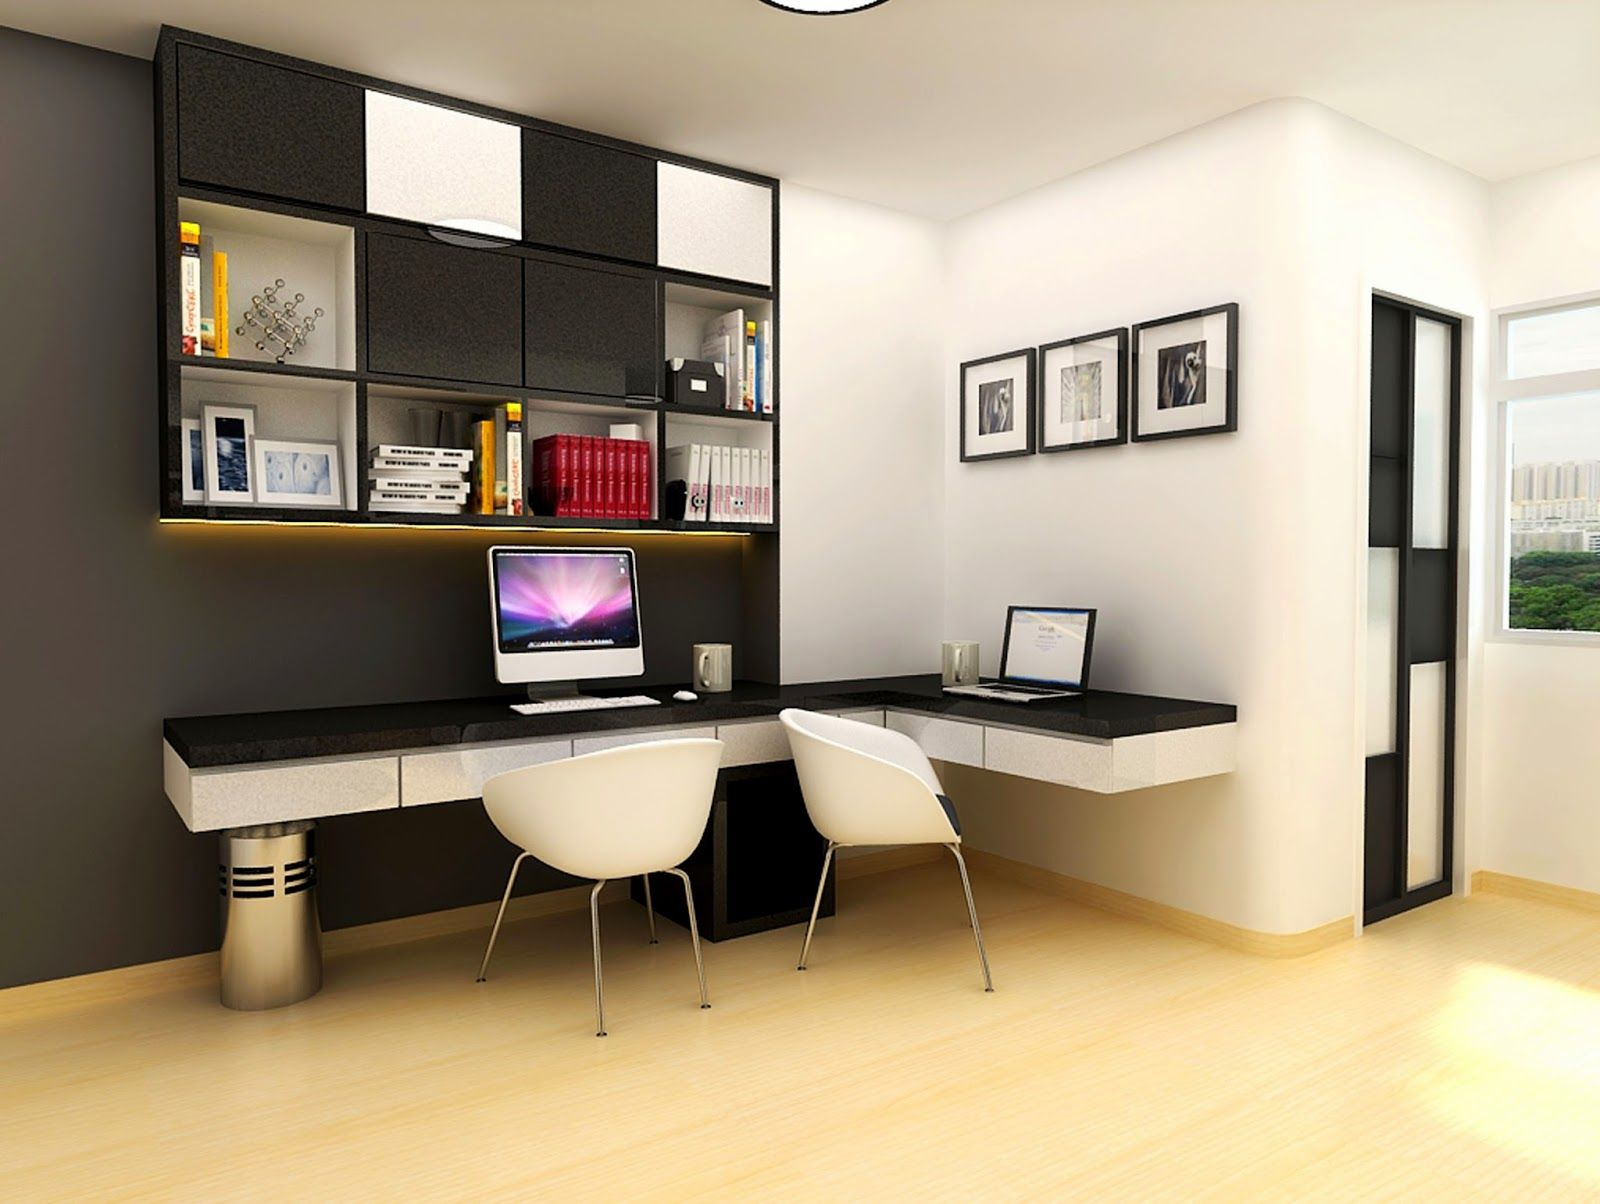 design inspirations | 10 neat yet fun study room ideas for